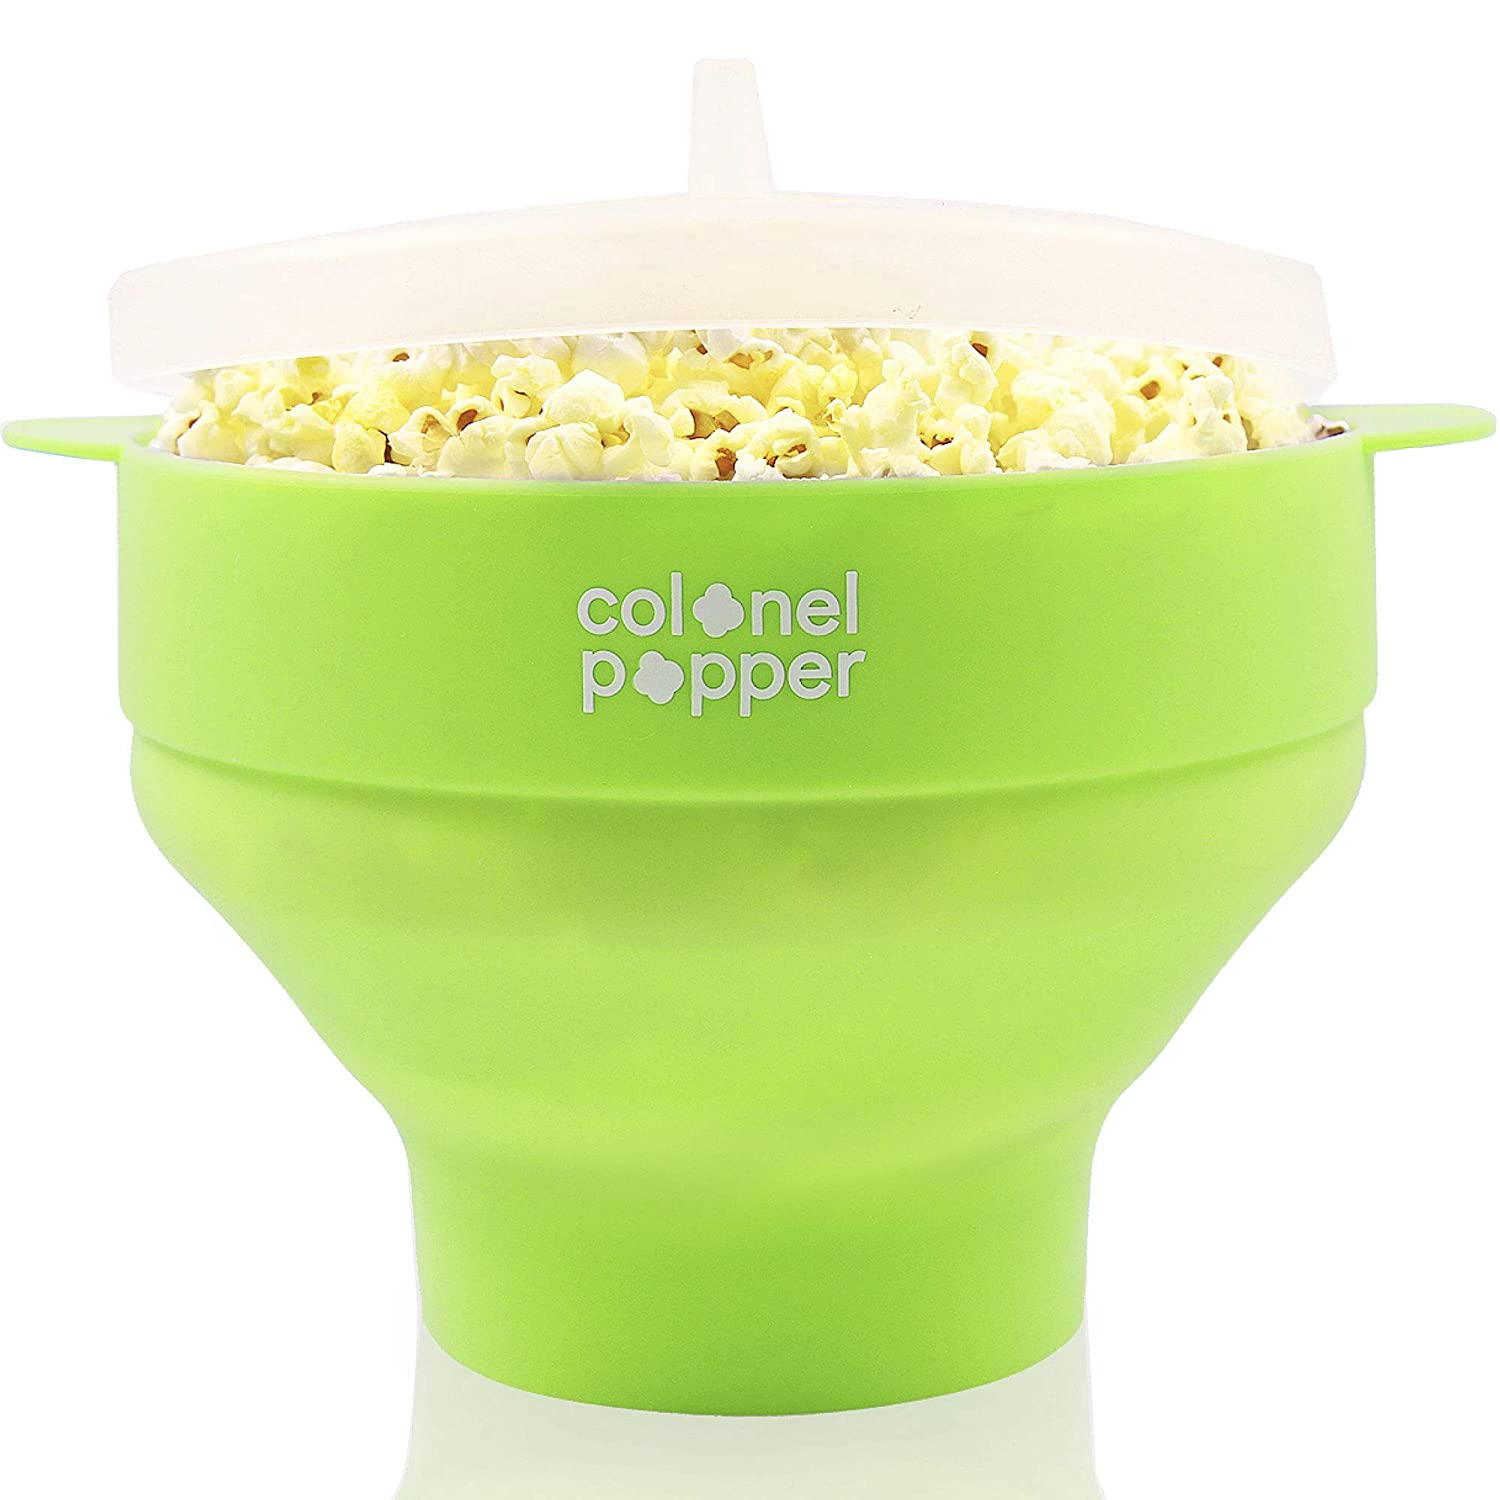 Colonel Popper Microwave Popcorn Popper Maker - Silicone Hot Air Pop Corn Bowl (Green)